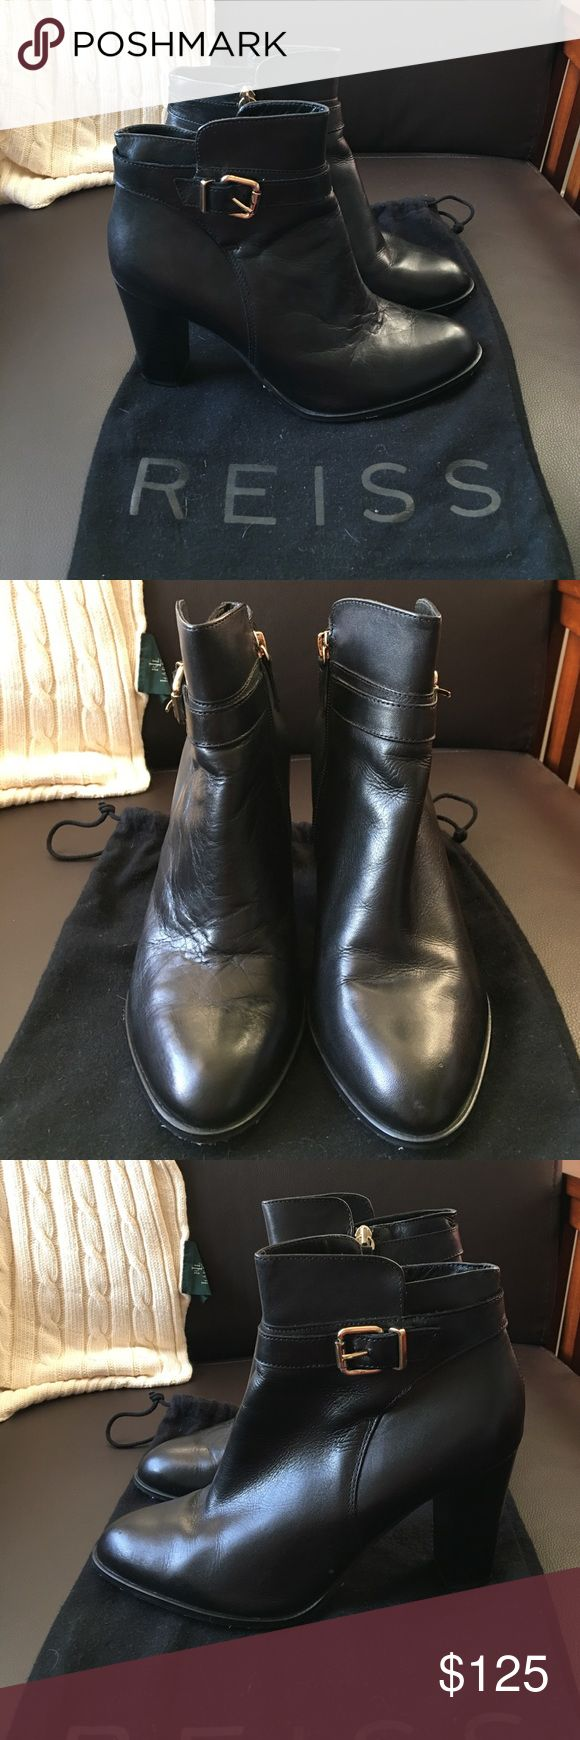 REISS Women's Black Imogen Stack Heel Ankle Boots REISS Women's Black Imogen Stack Heel Ankle Boots - Size 40 (Fits my size 9/9.5 Feet) - One of the boots' leather is more worn (crinkled) as shown in photos Reiss Shoes Ankle Boots & Booties